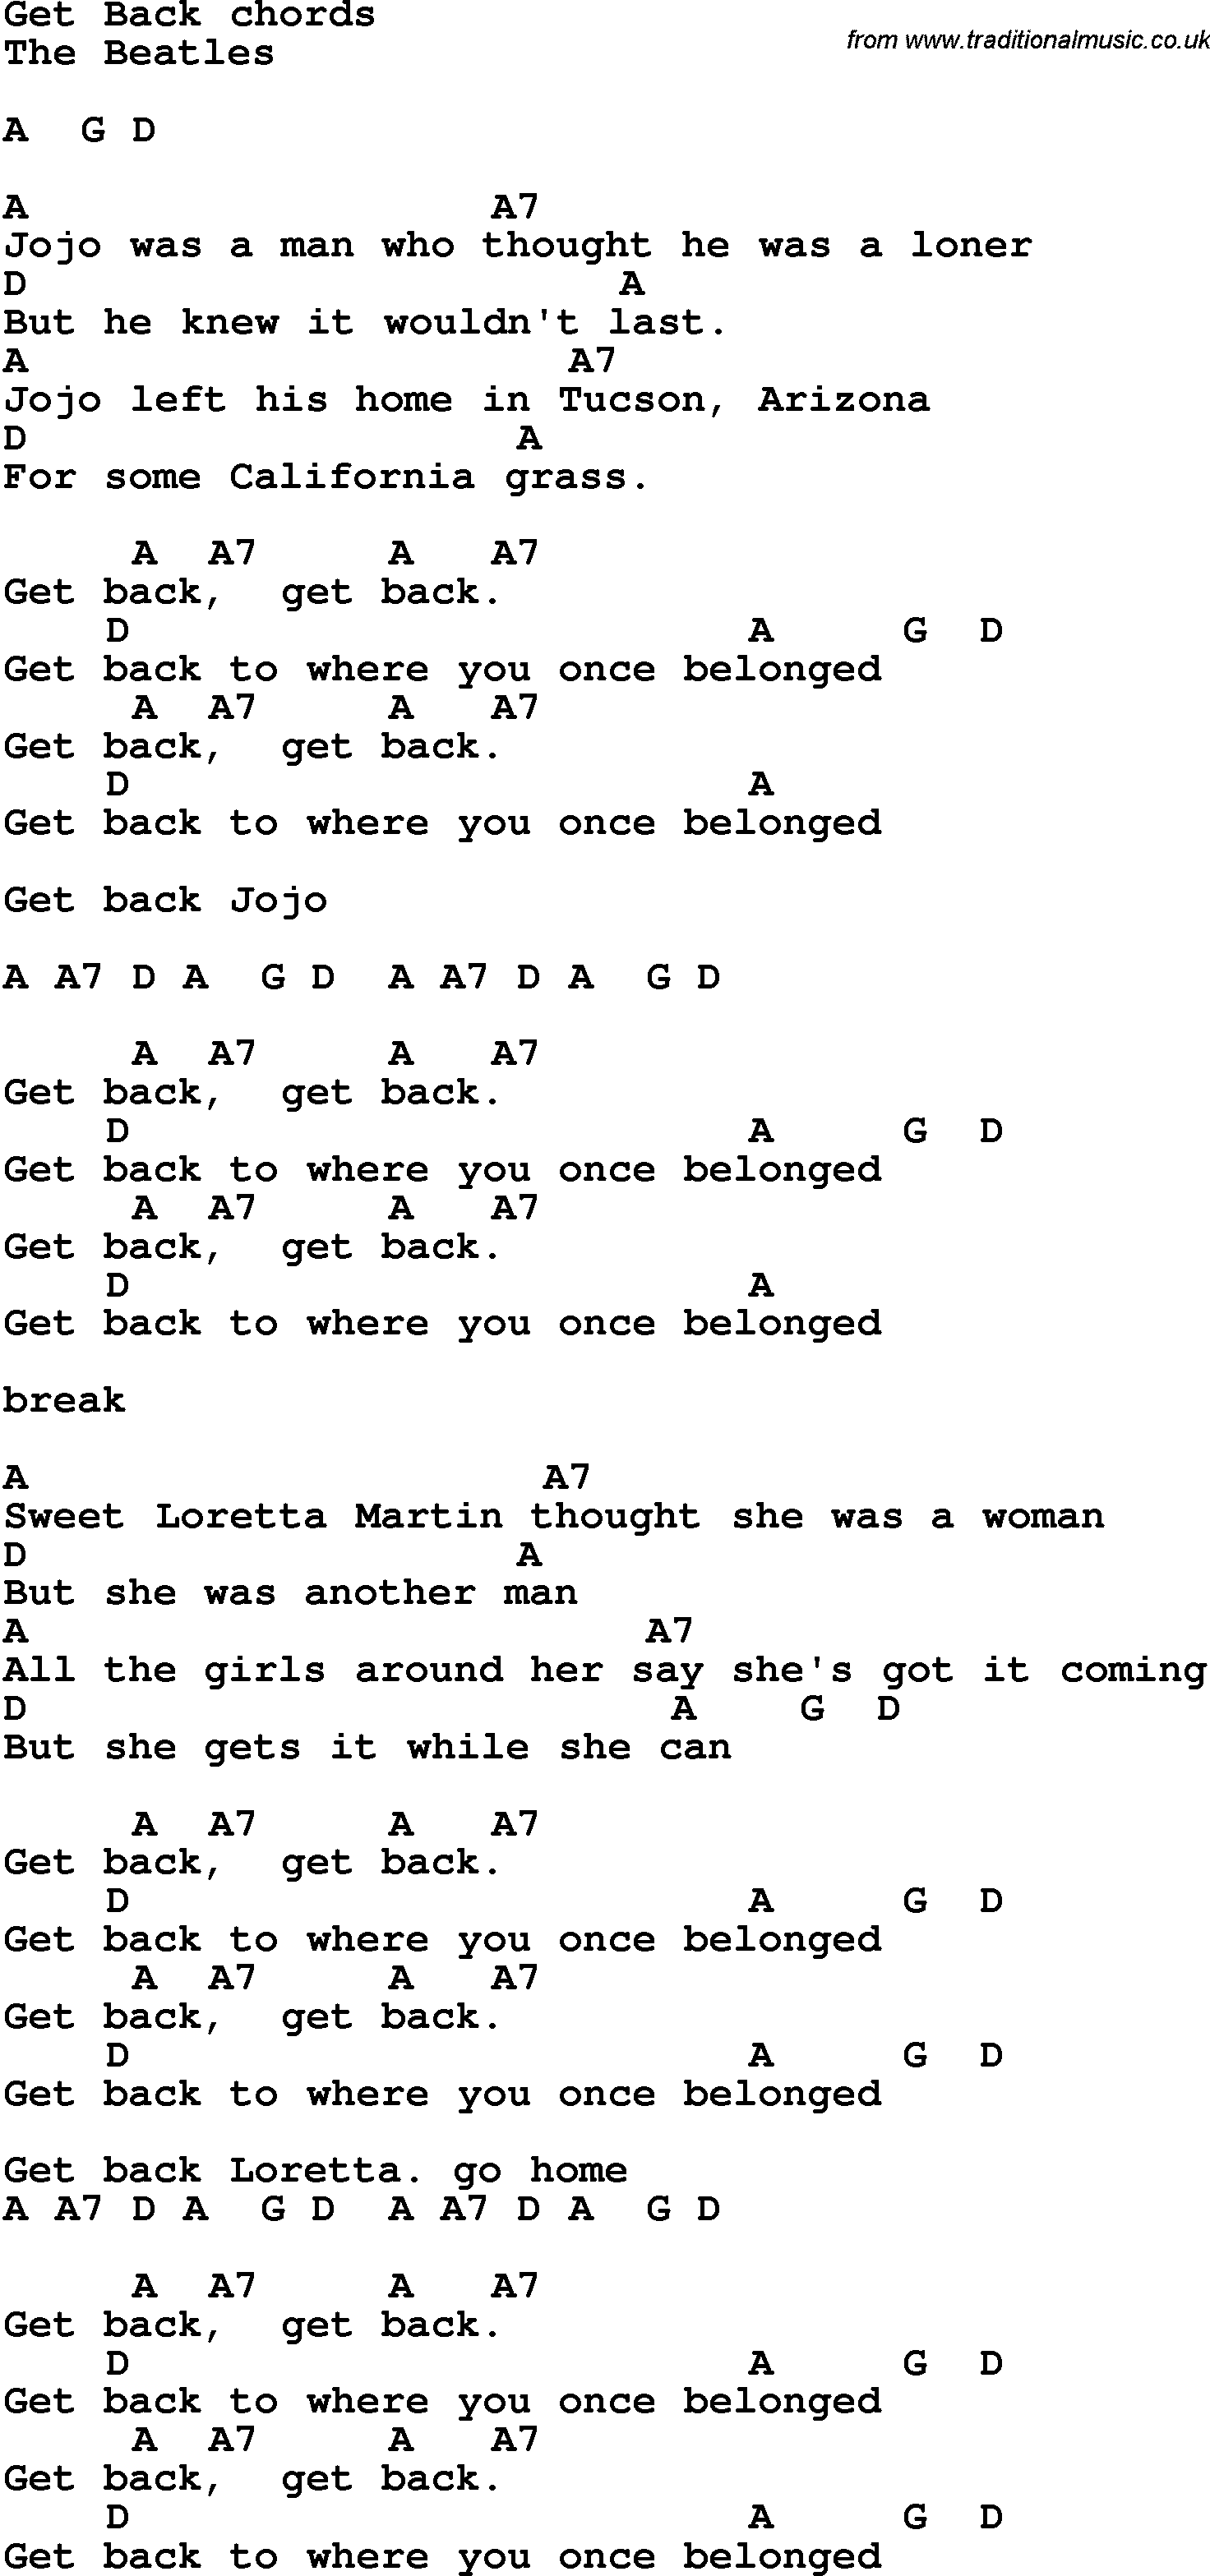 Song lyrics with guitar chords for get back the beatles song lyrics with guitar chords for get back the beatles hexwebz Images